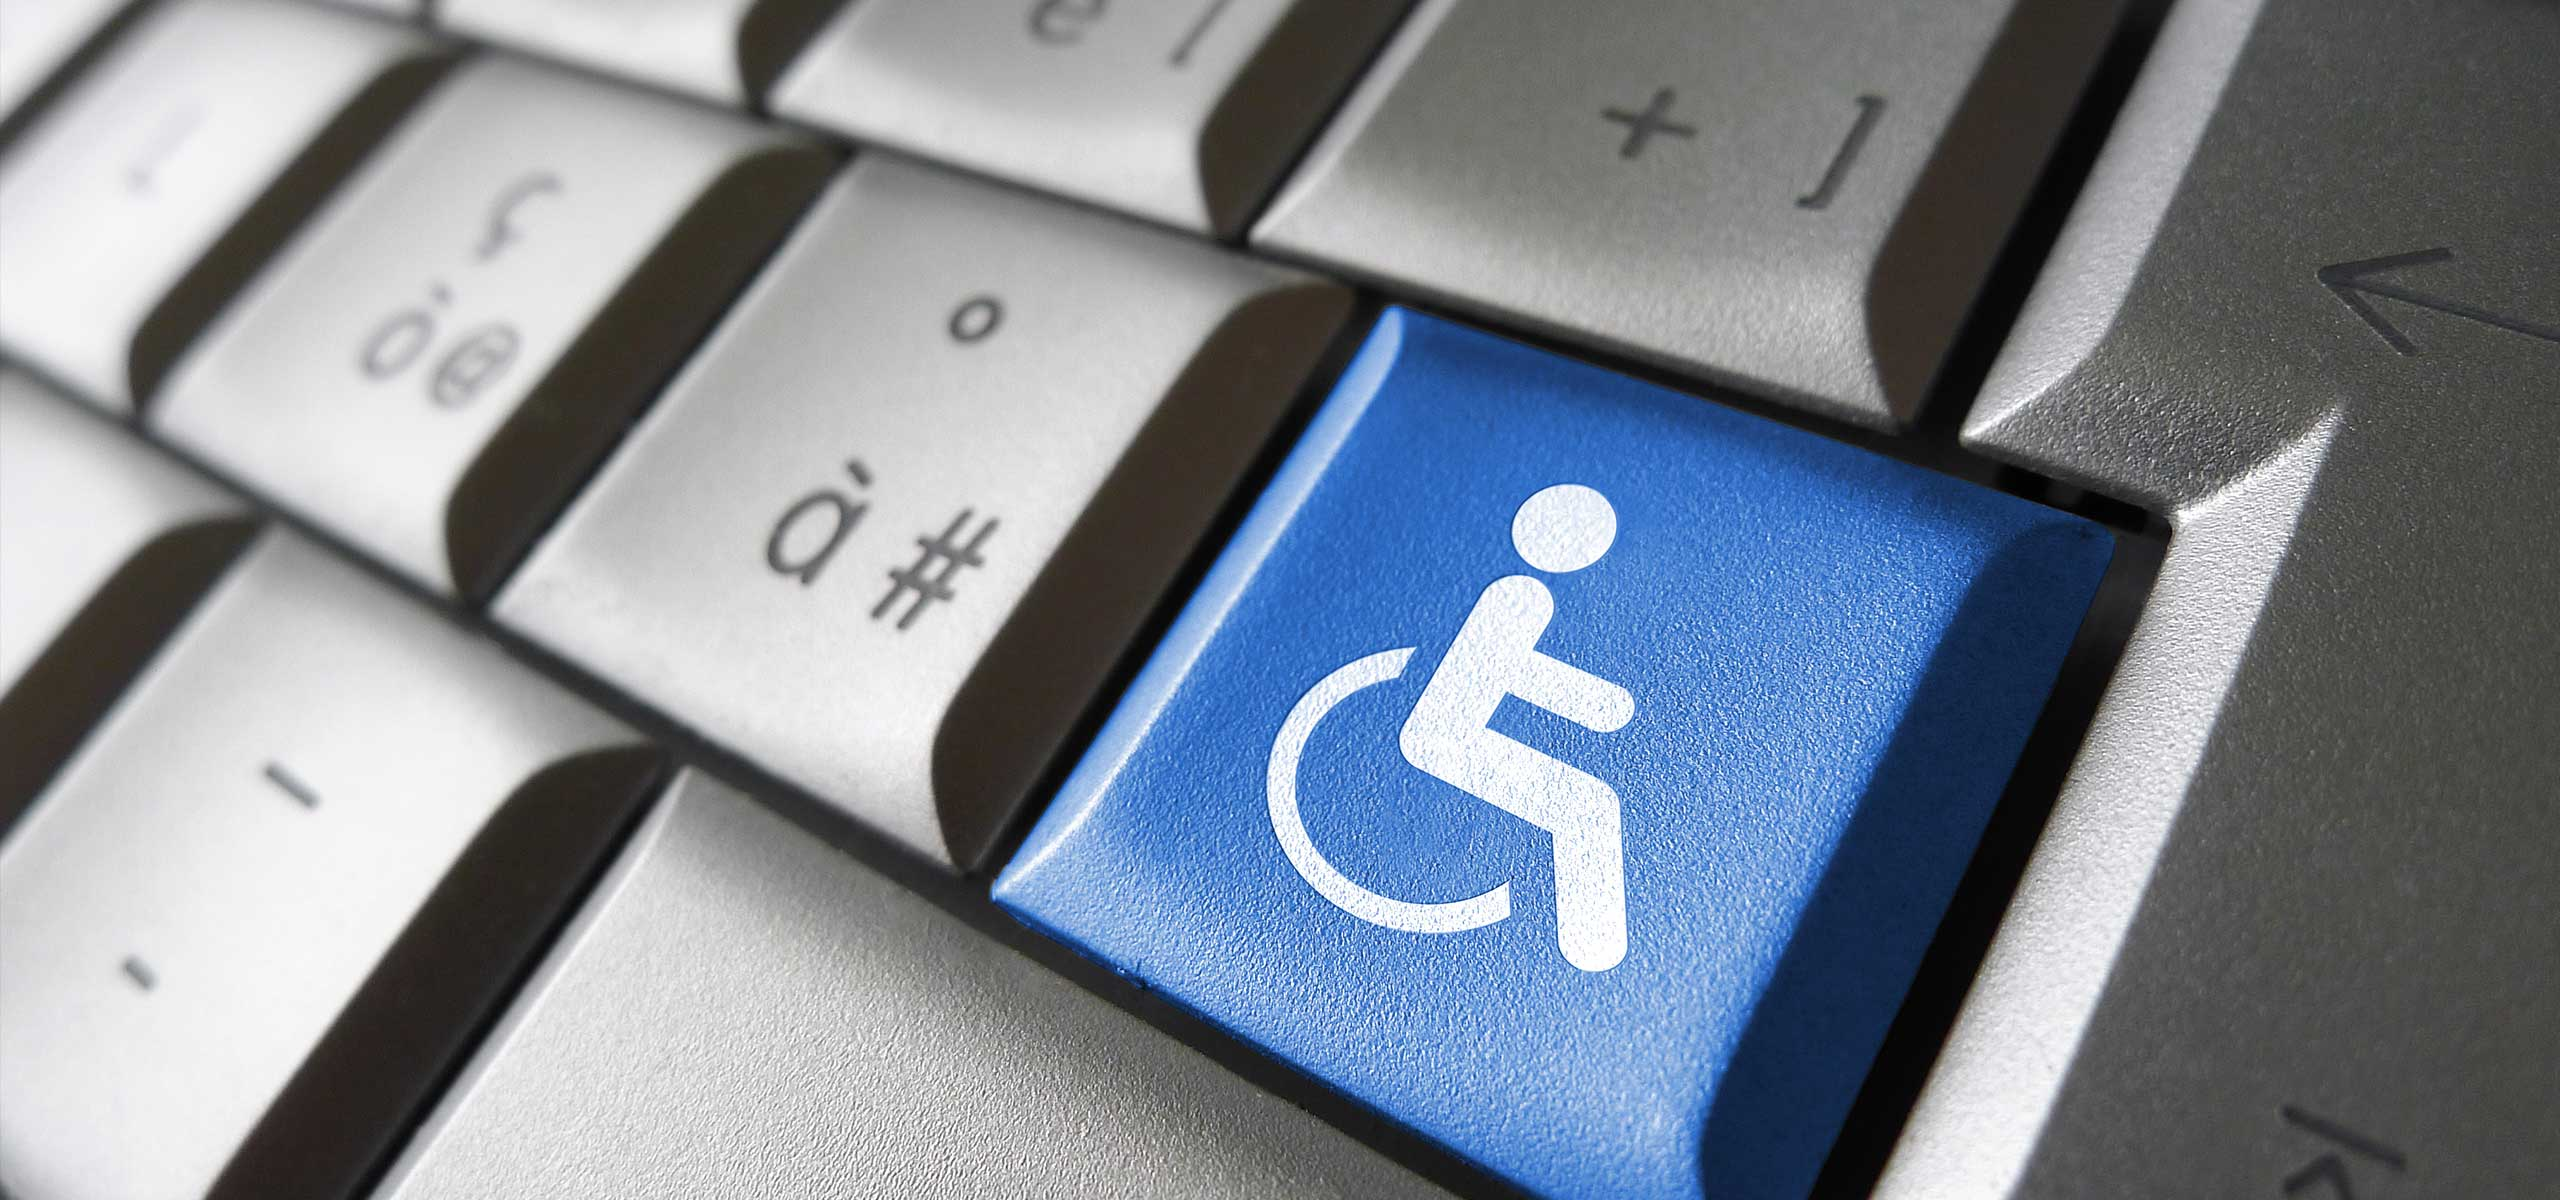 Web Accessibility Icon on Keyboard